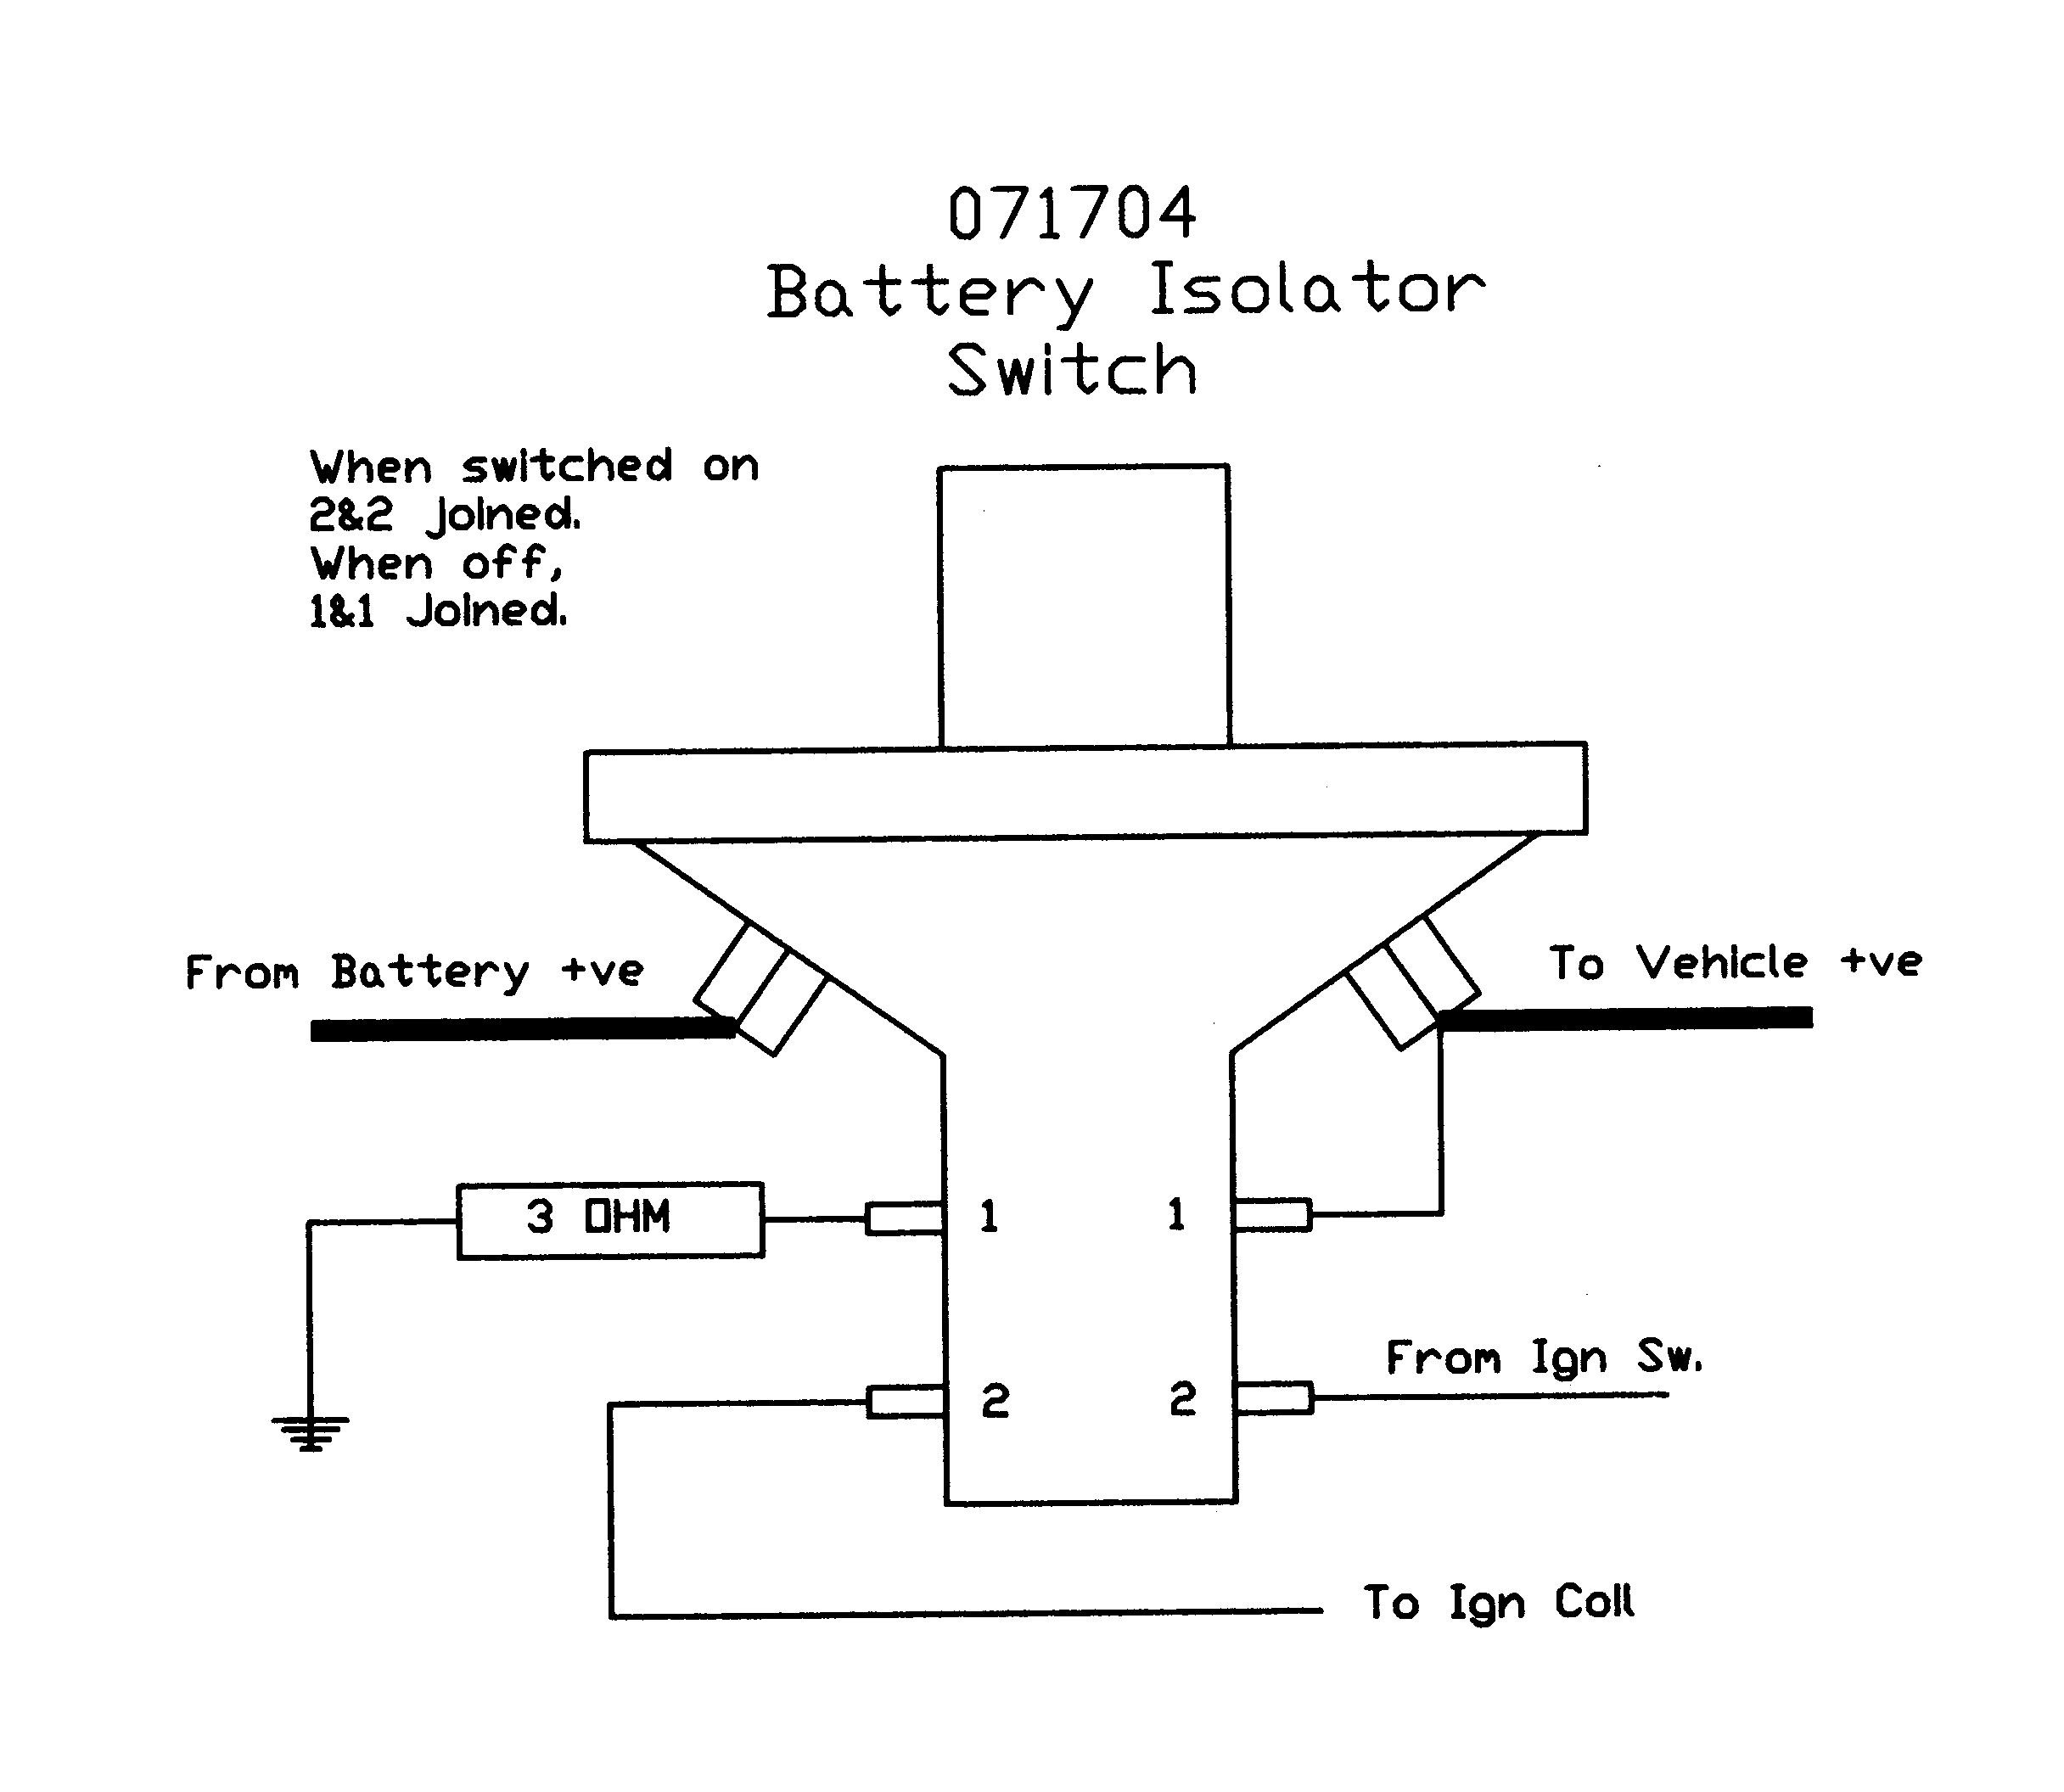 Battery Isolator Switch Wiring Diagram : Battery isolator switch removable key splash proof